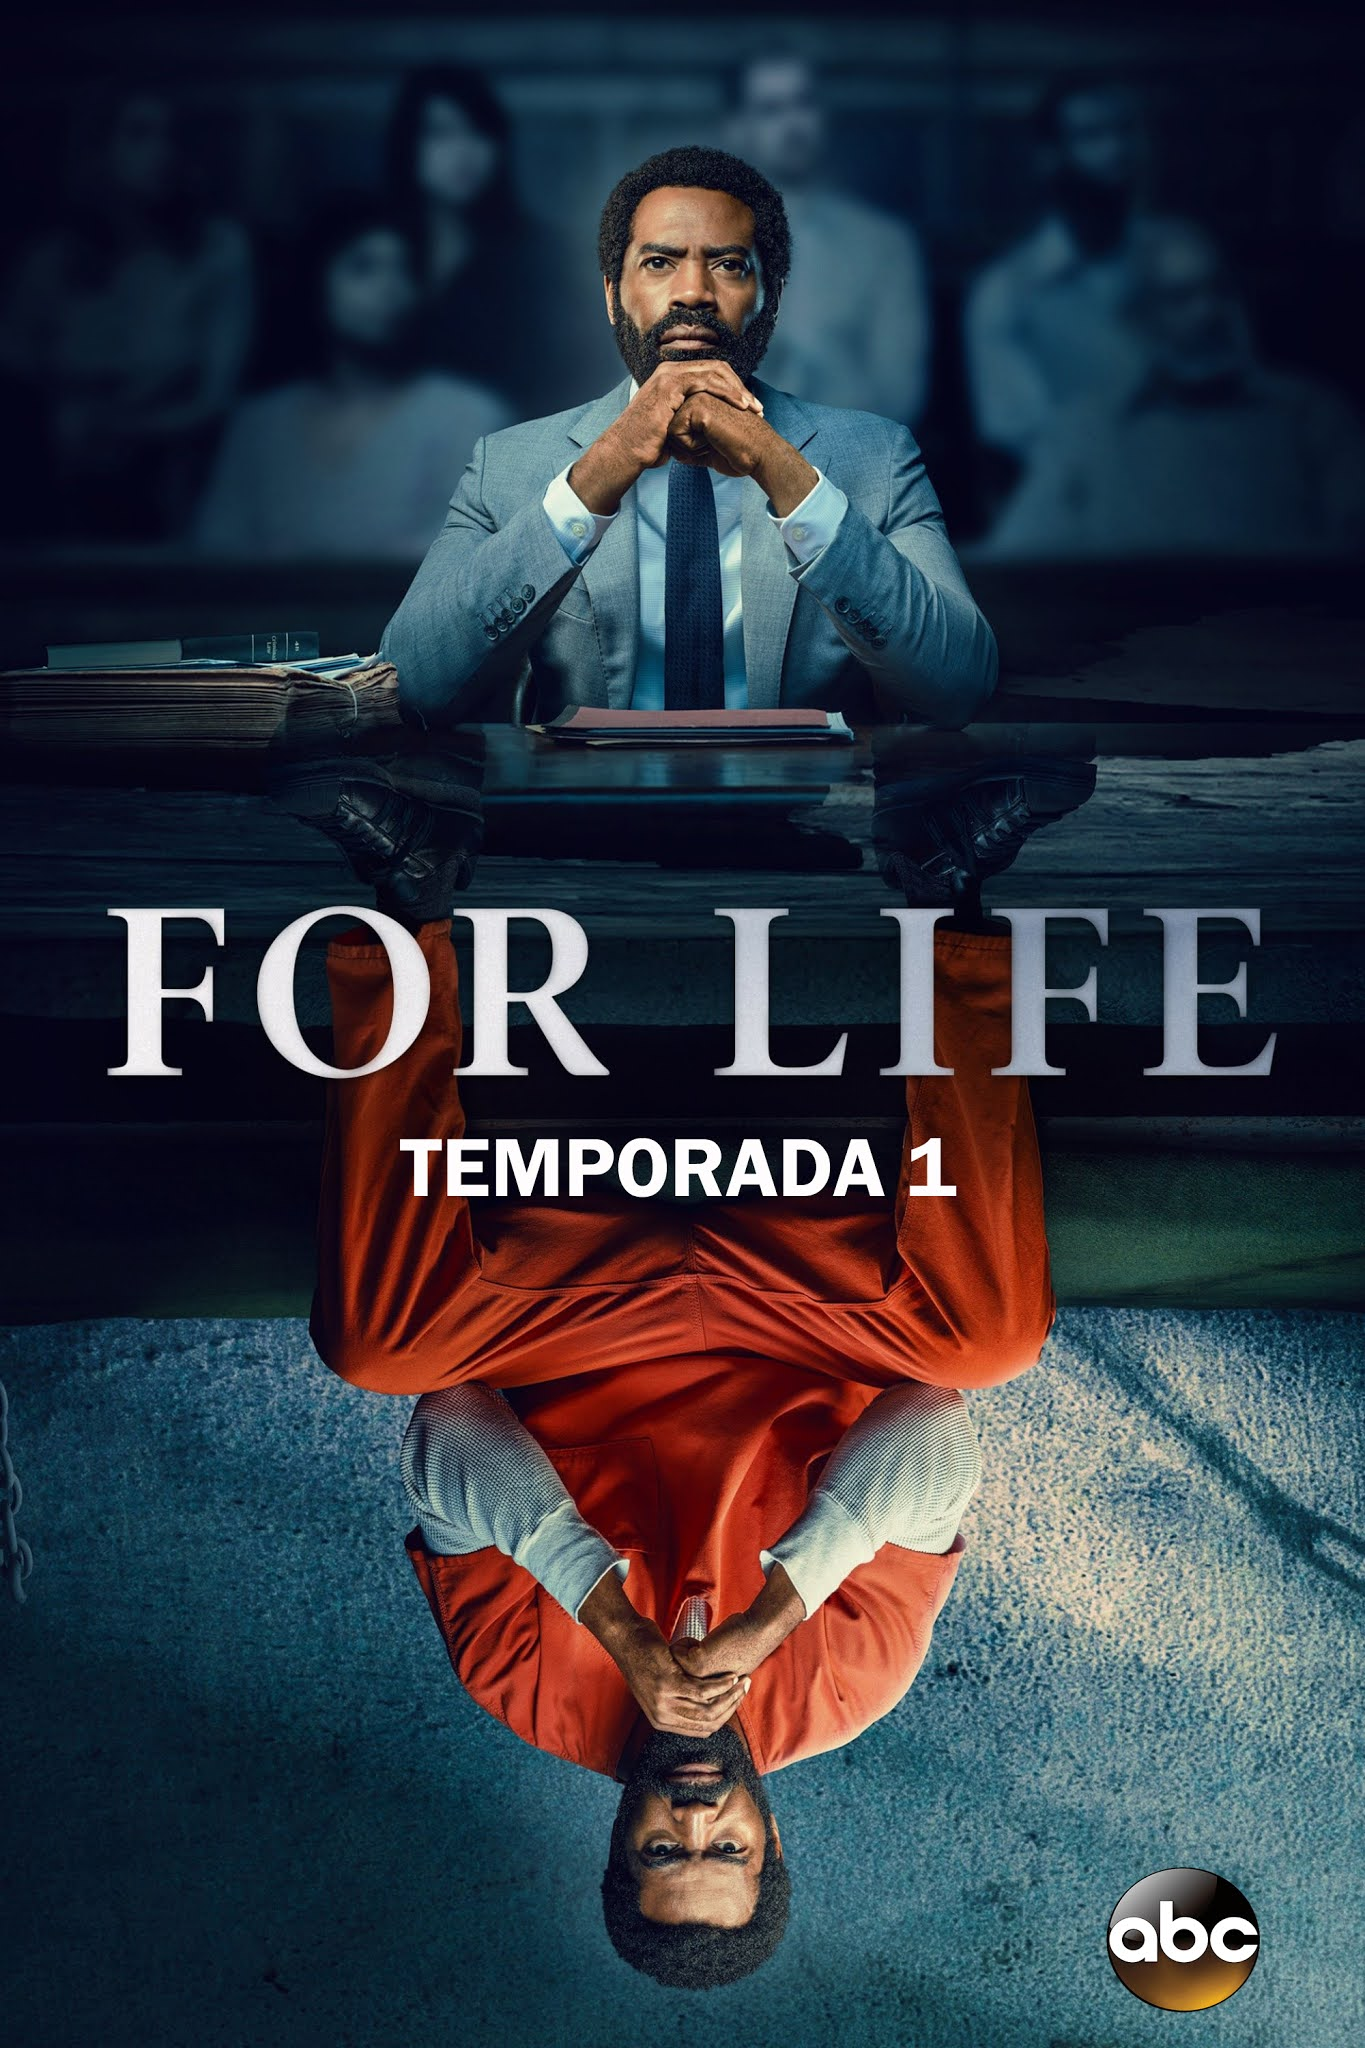 For Life (2020) Temporada 1 WEB-DL 1080p Latino